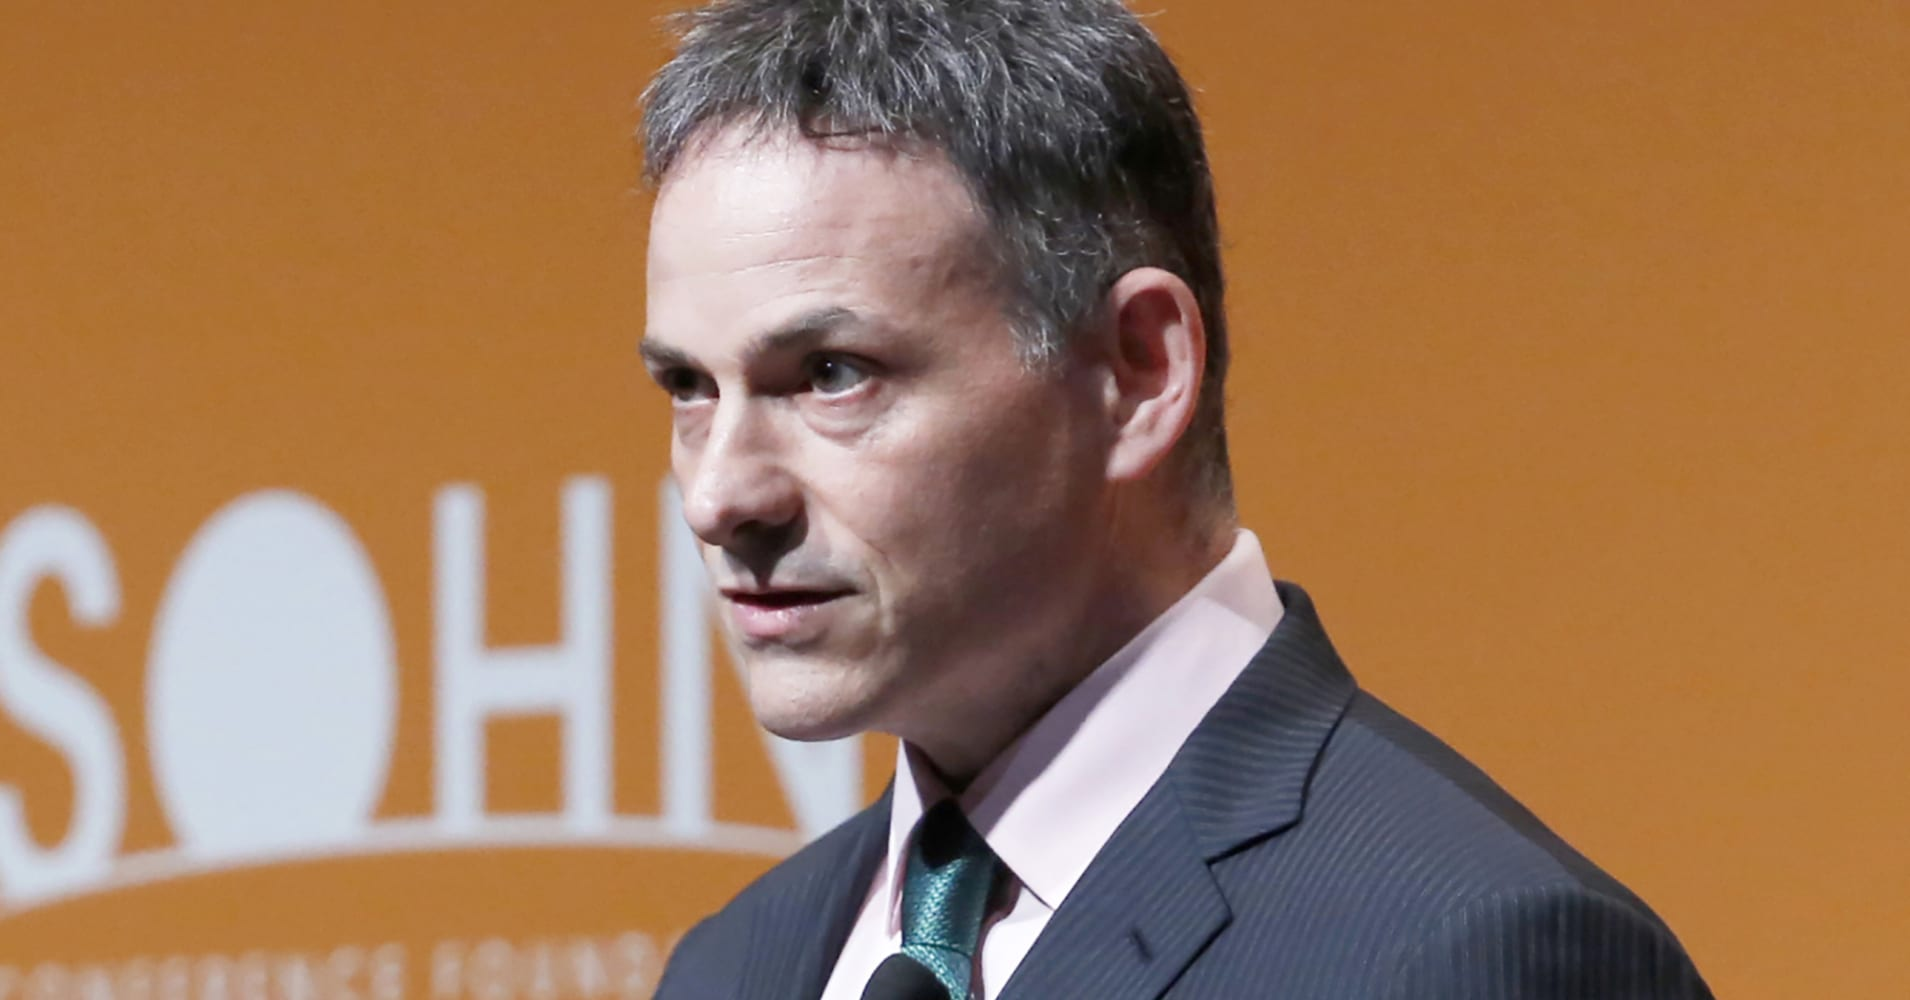 David Einhorn is Getting Killed by his 'bubble Basket' Short Bets Against Tesla, Amazon